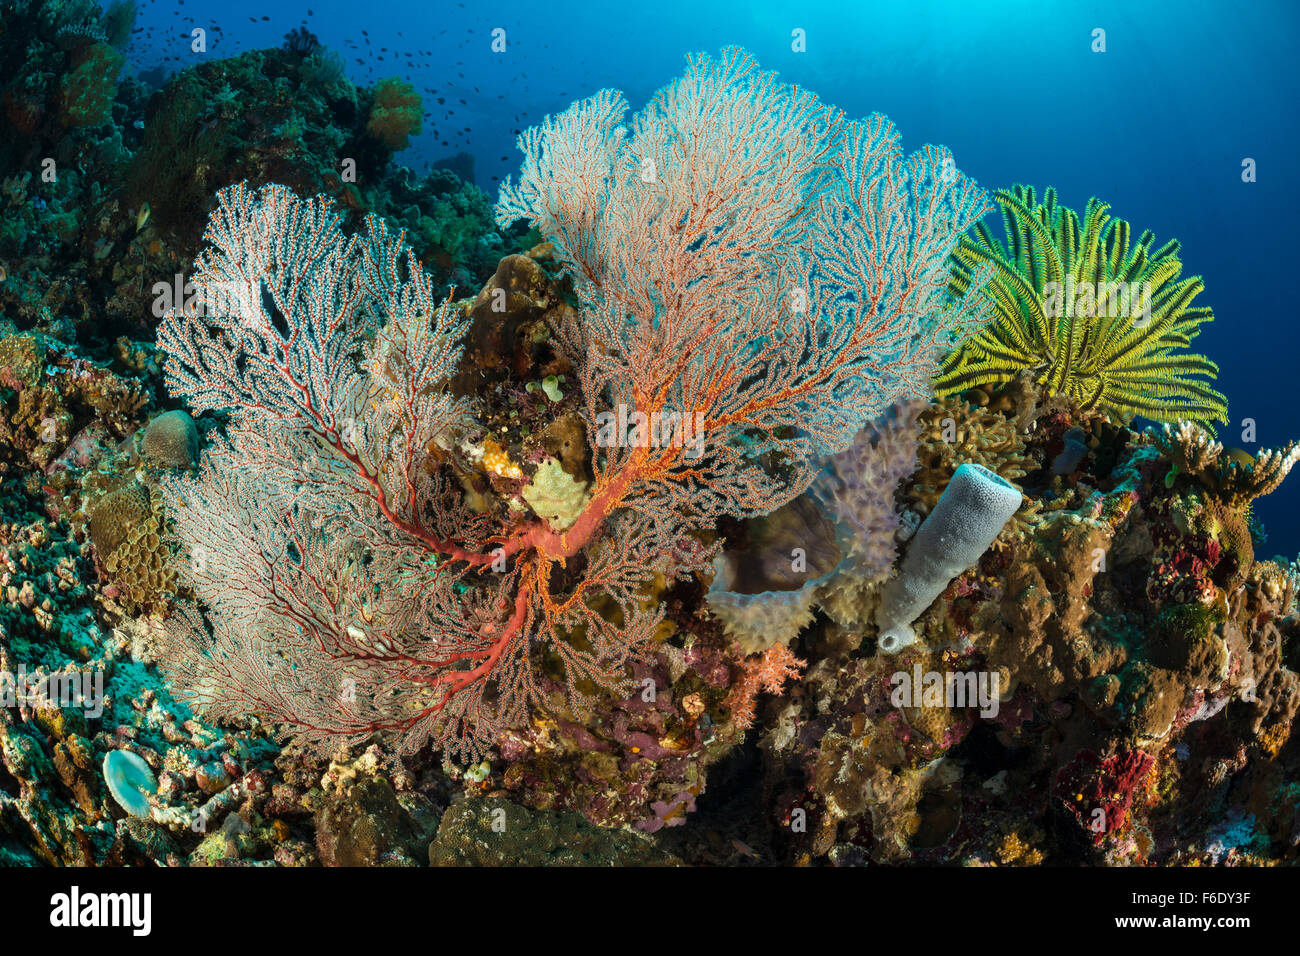 Colored Coral Reef, Melithaea sp., Komodo, Indonesia - Stock Image